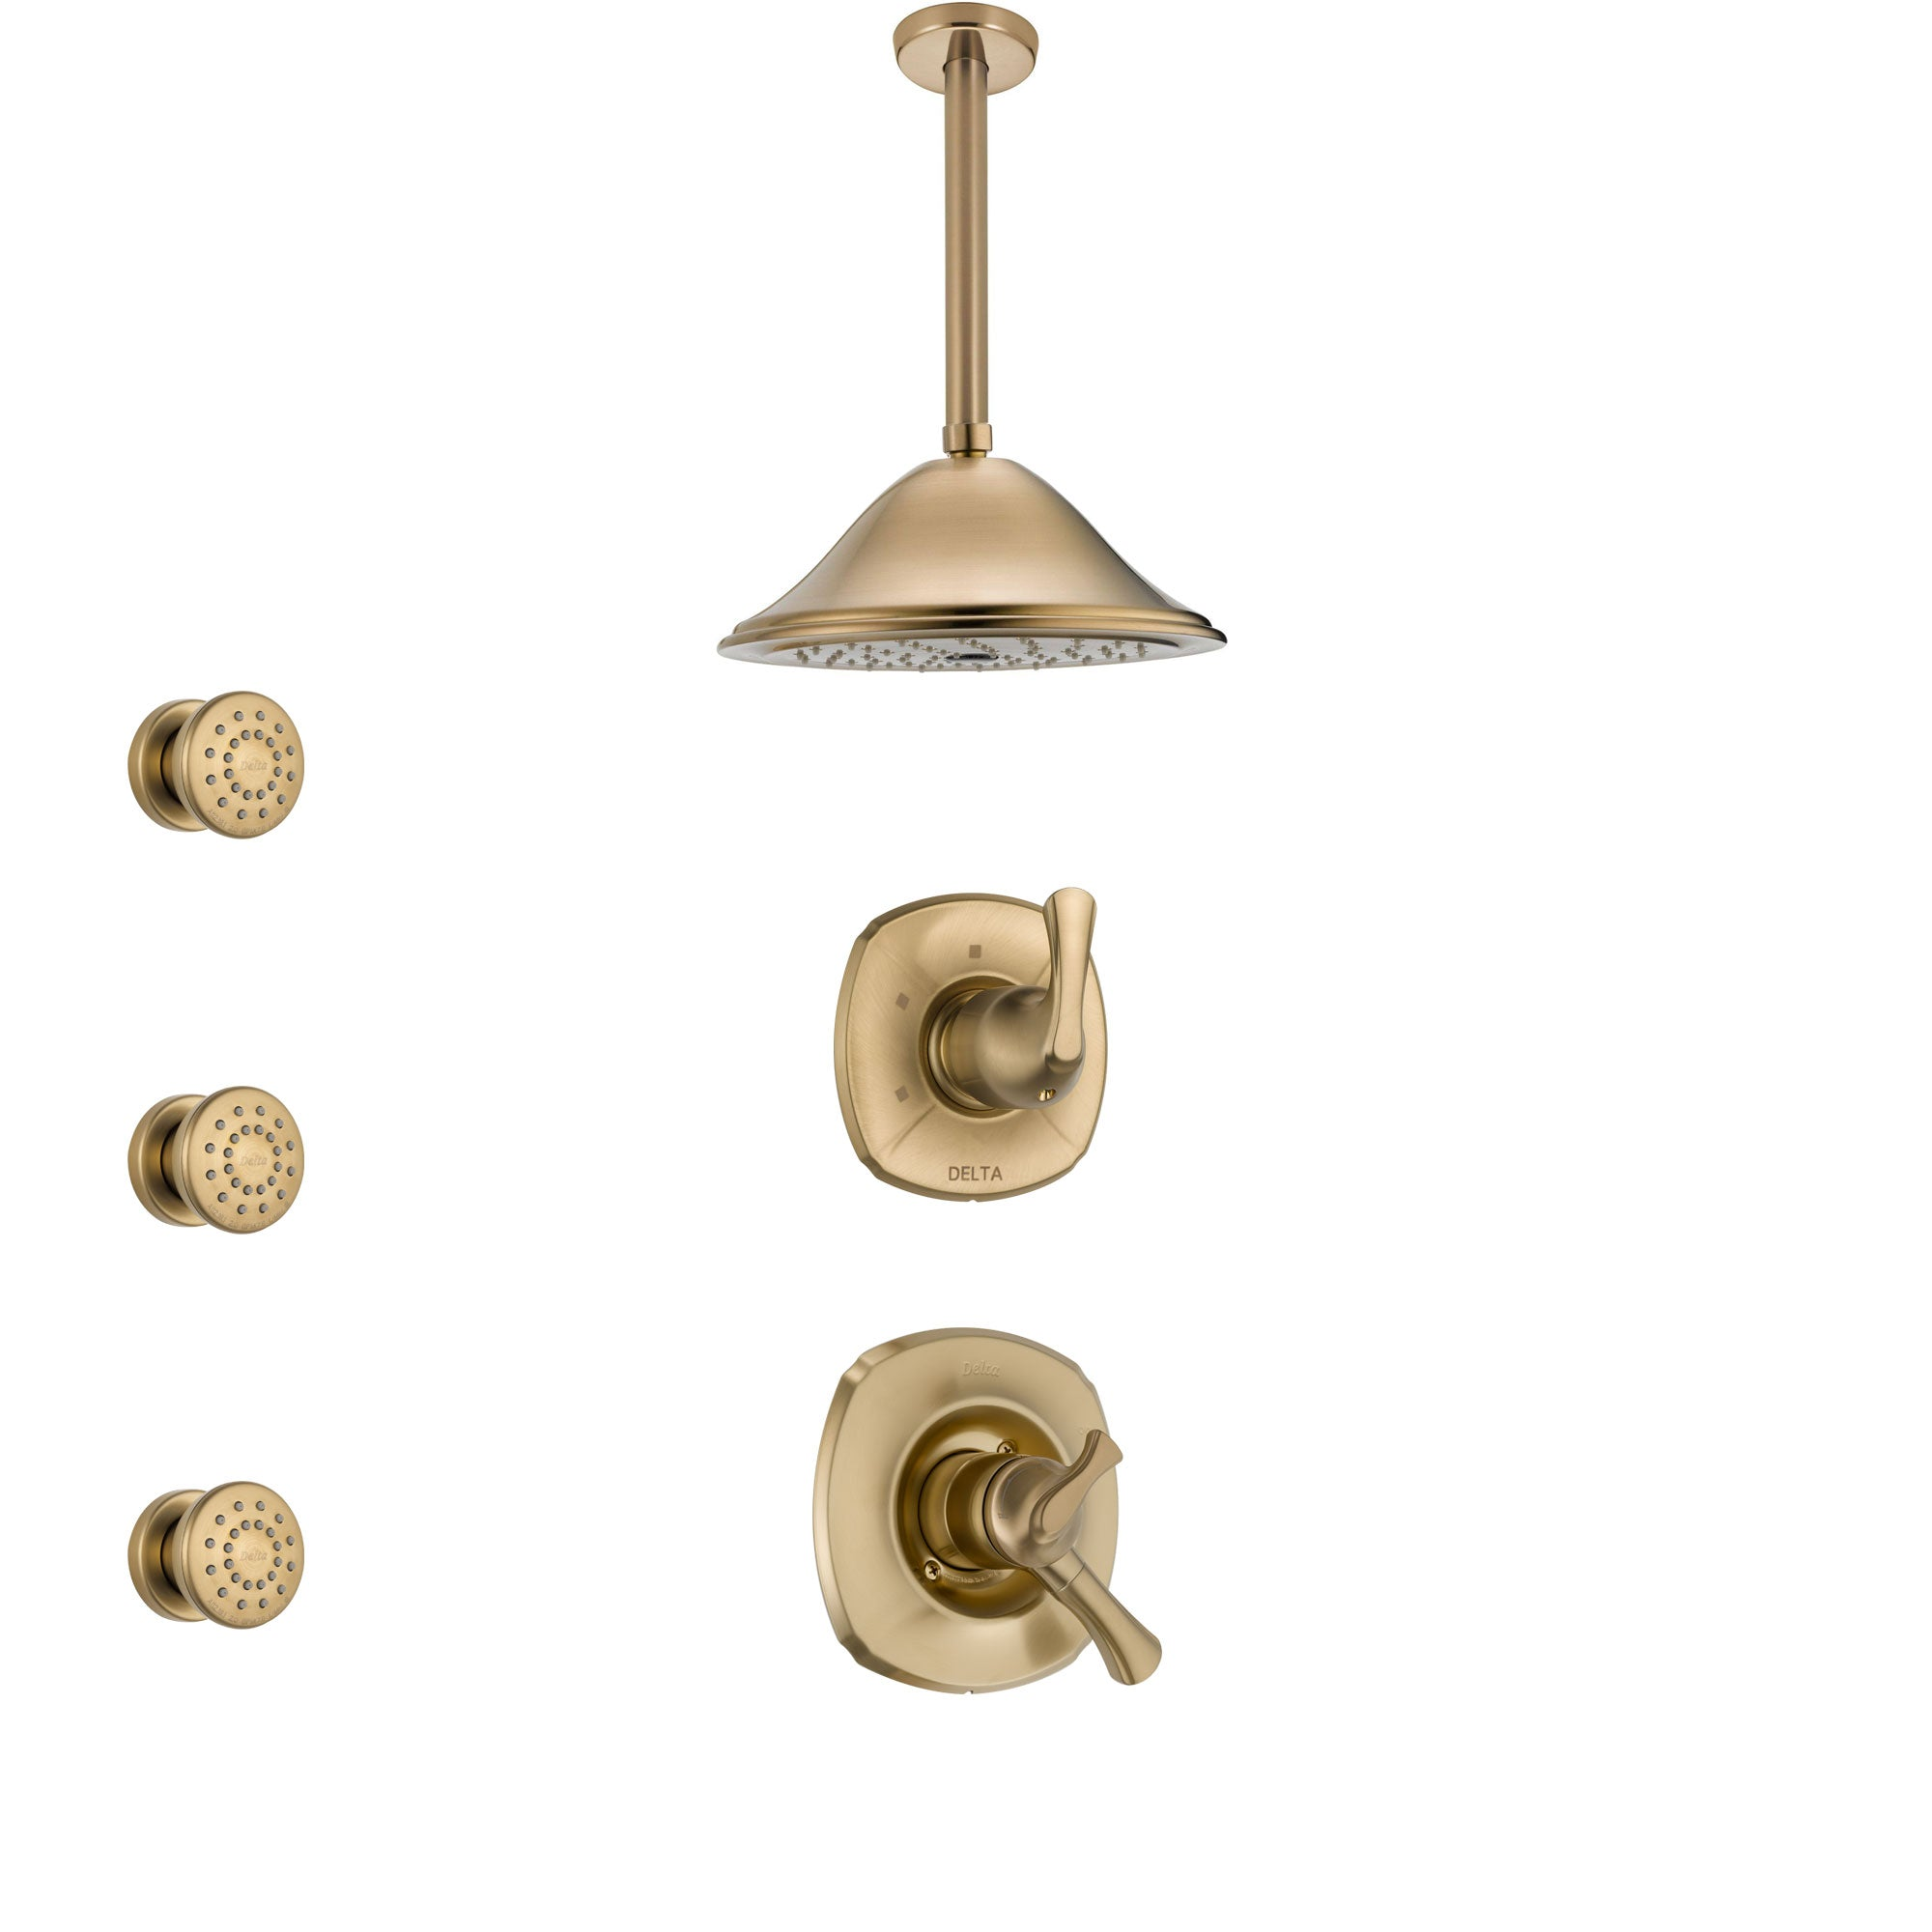 Delta Addison Champagne Bronze Shower System with Dual Control Handle, 3-Setting Diverter, Ceiling Mount Showerhead, and 3 Body Sprays SS1792CZ2